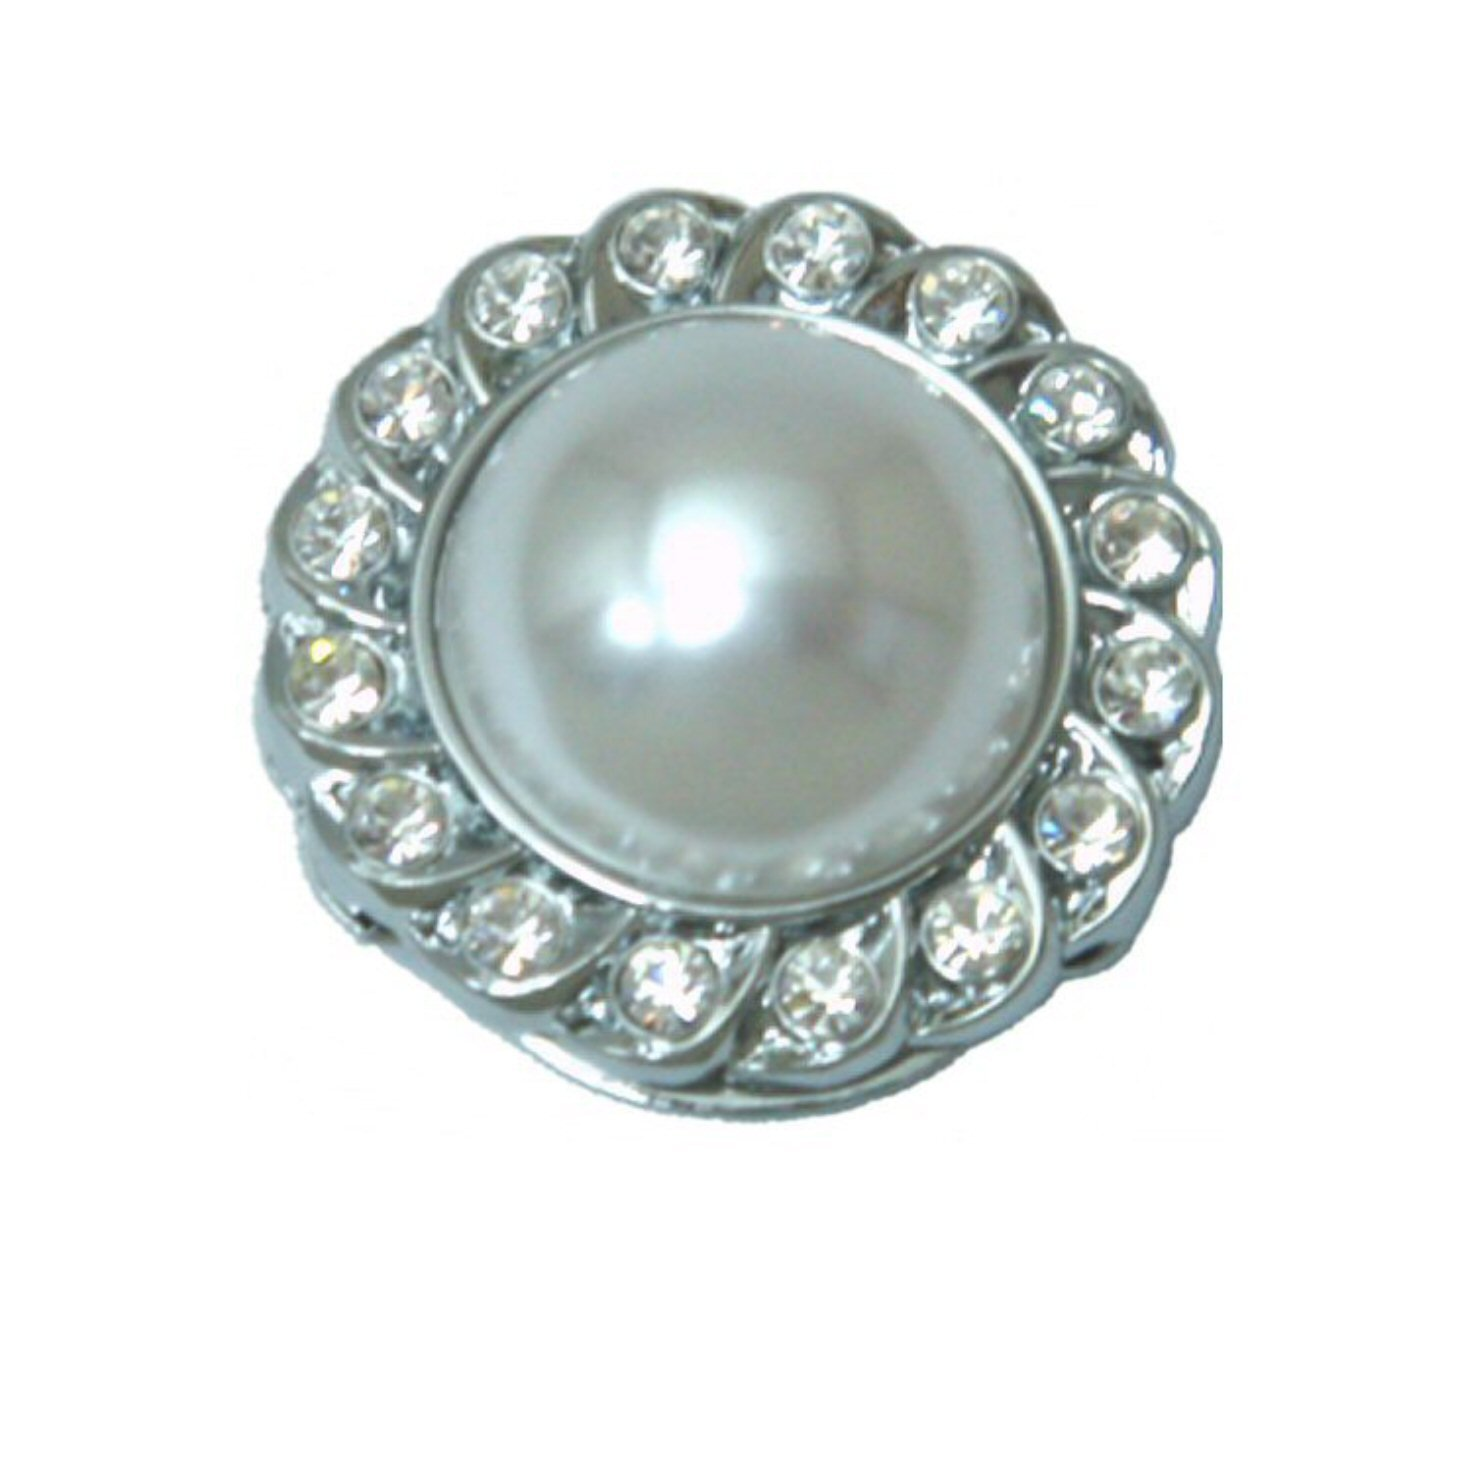 Eyeglass Holder Brooch with Crystals Bezel - White Pearl